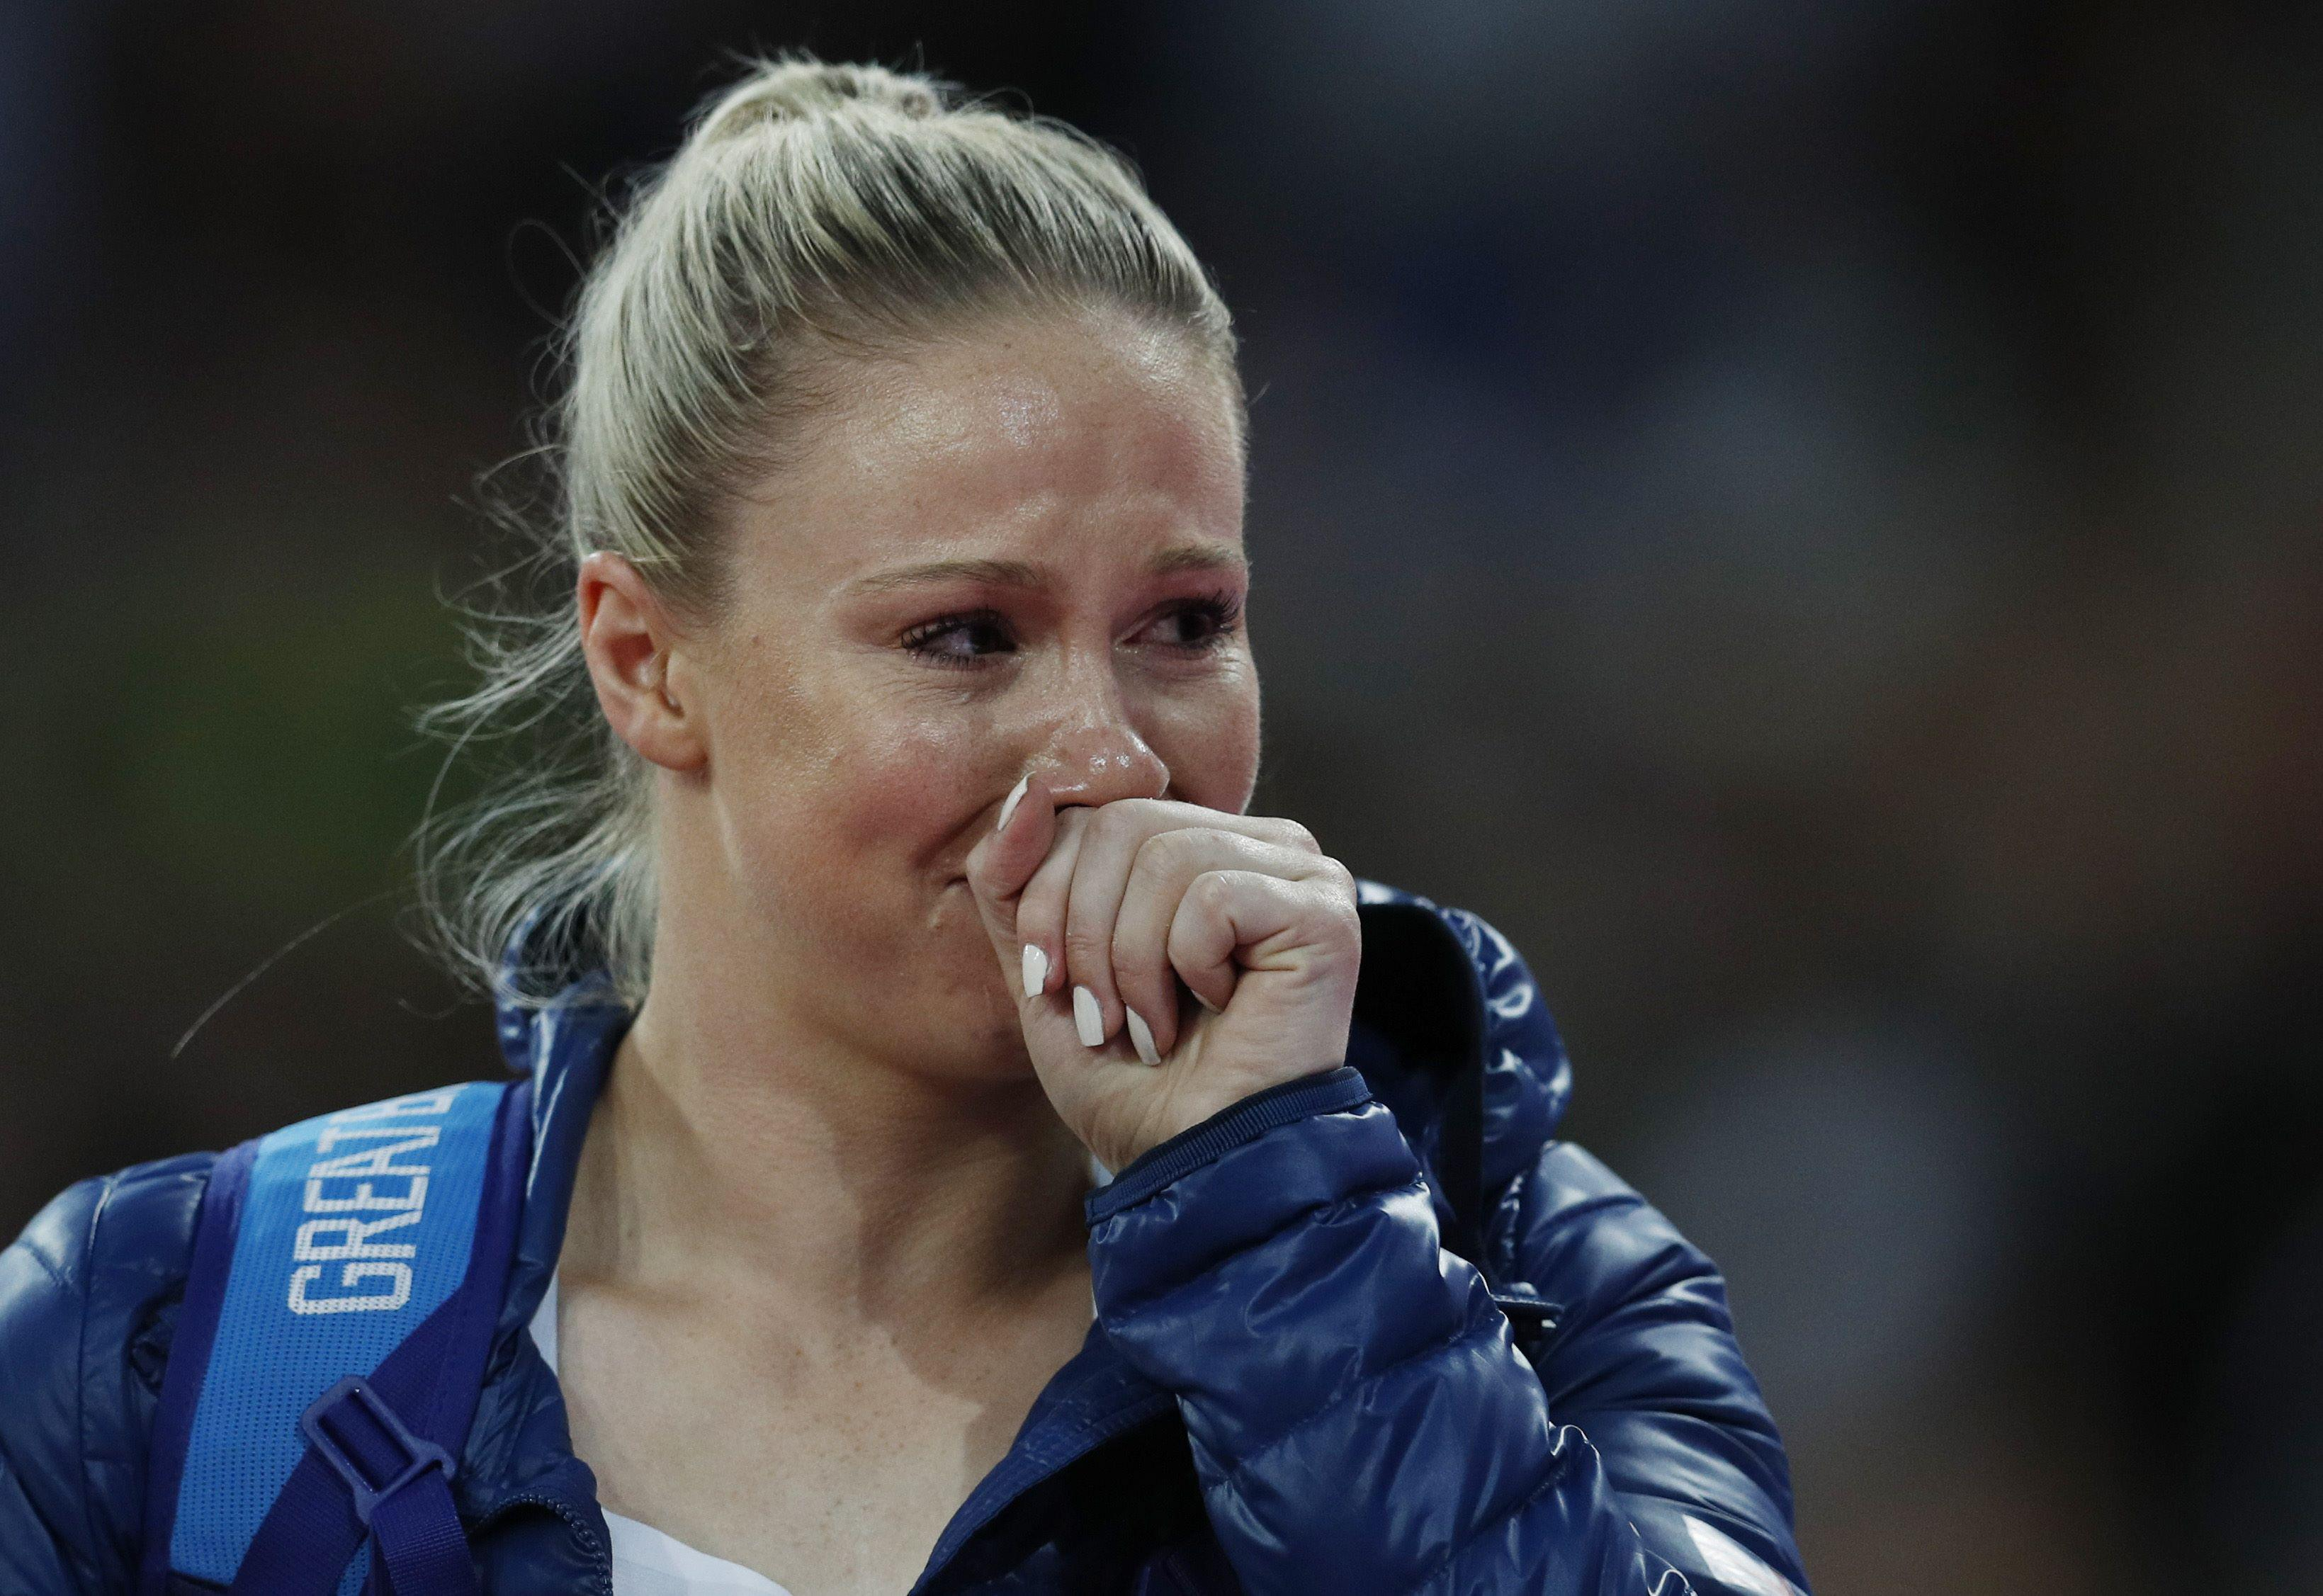 Sophie Hitchon was in floods of tears as she failed to win a World Championships medal